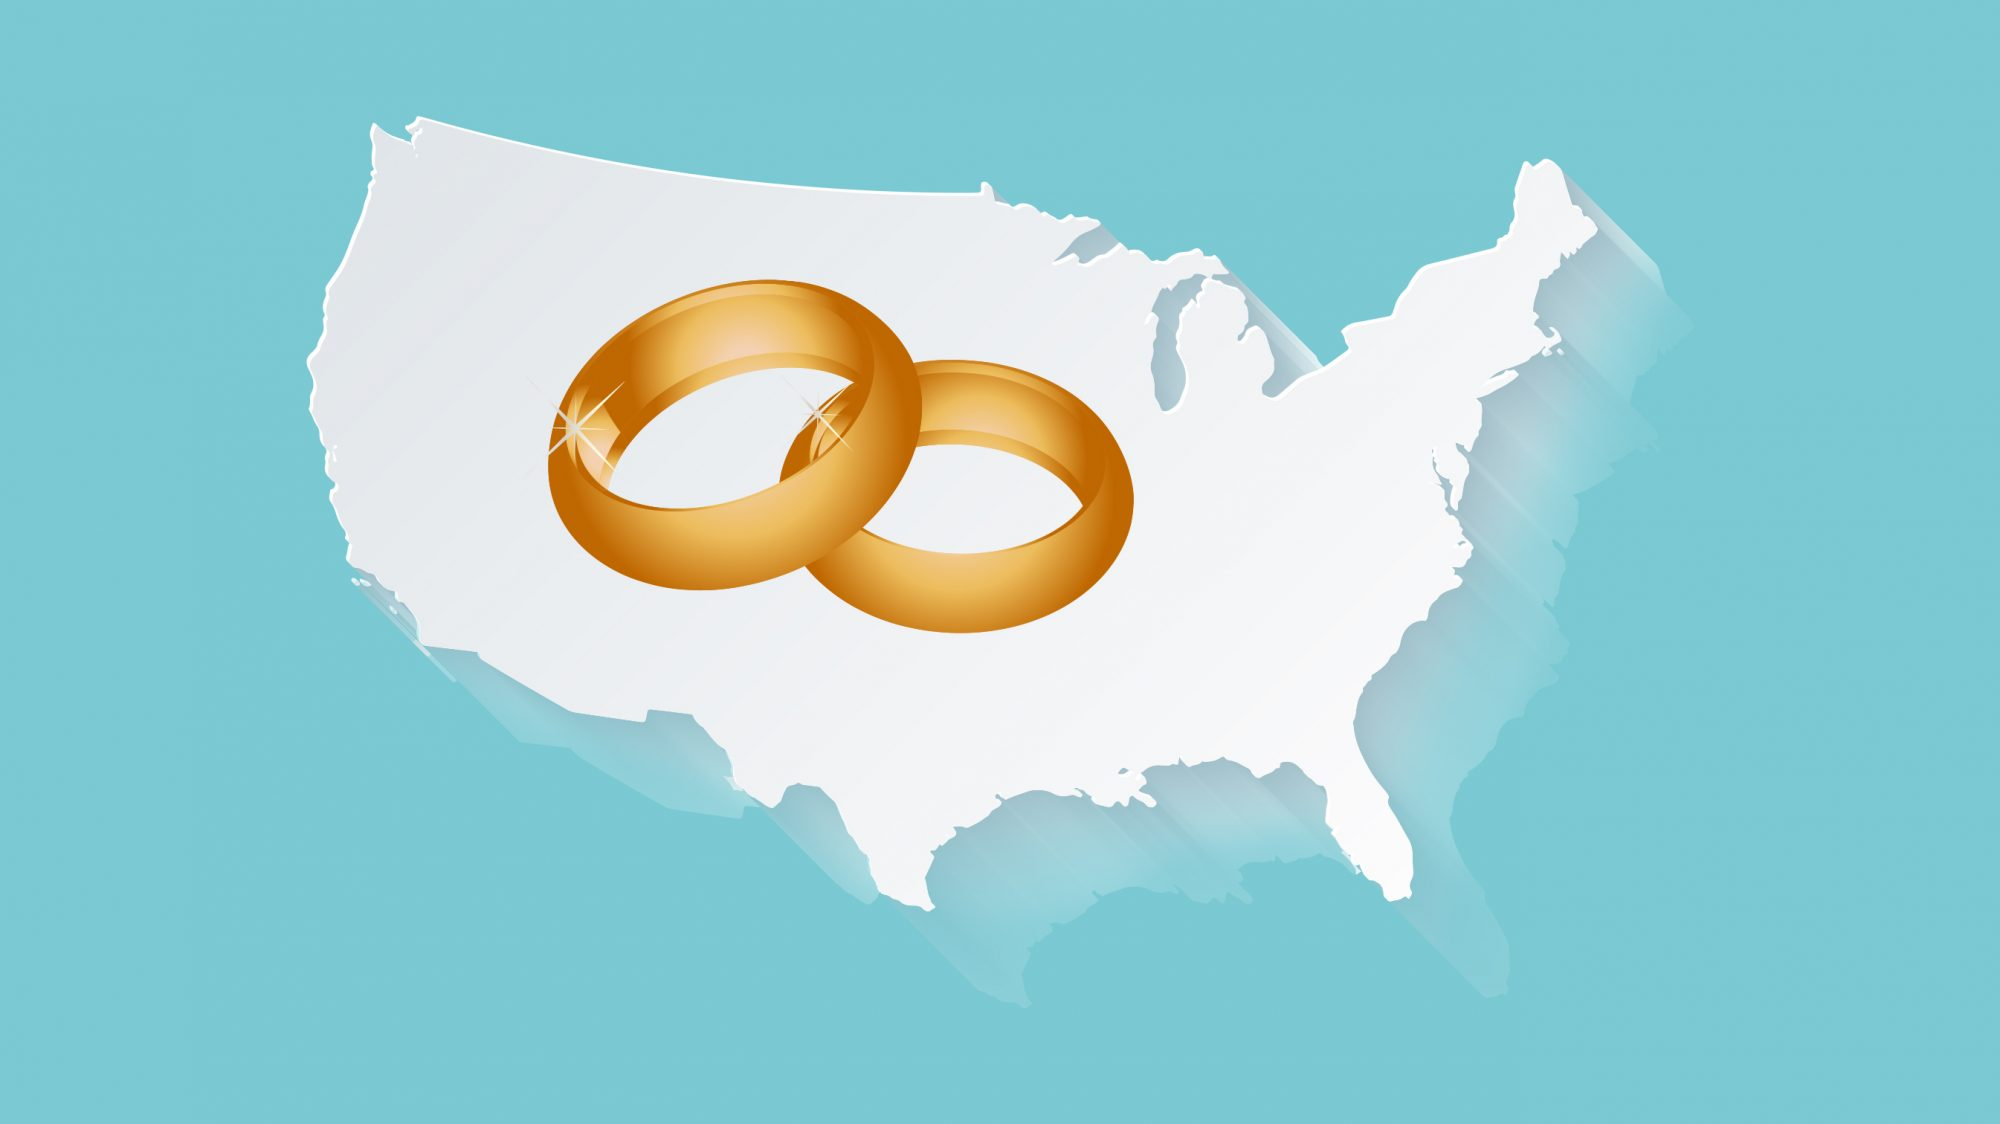 U.S. States With the Lowest and Highest Divorce Rates